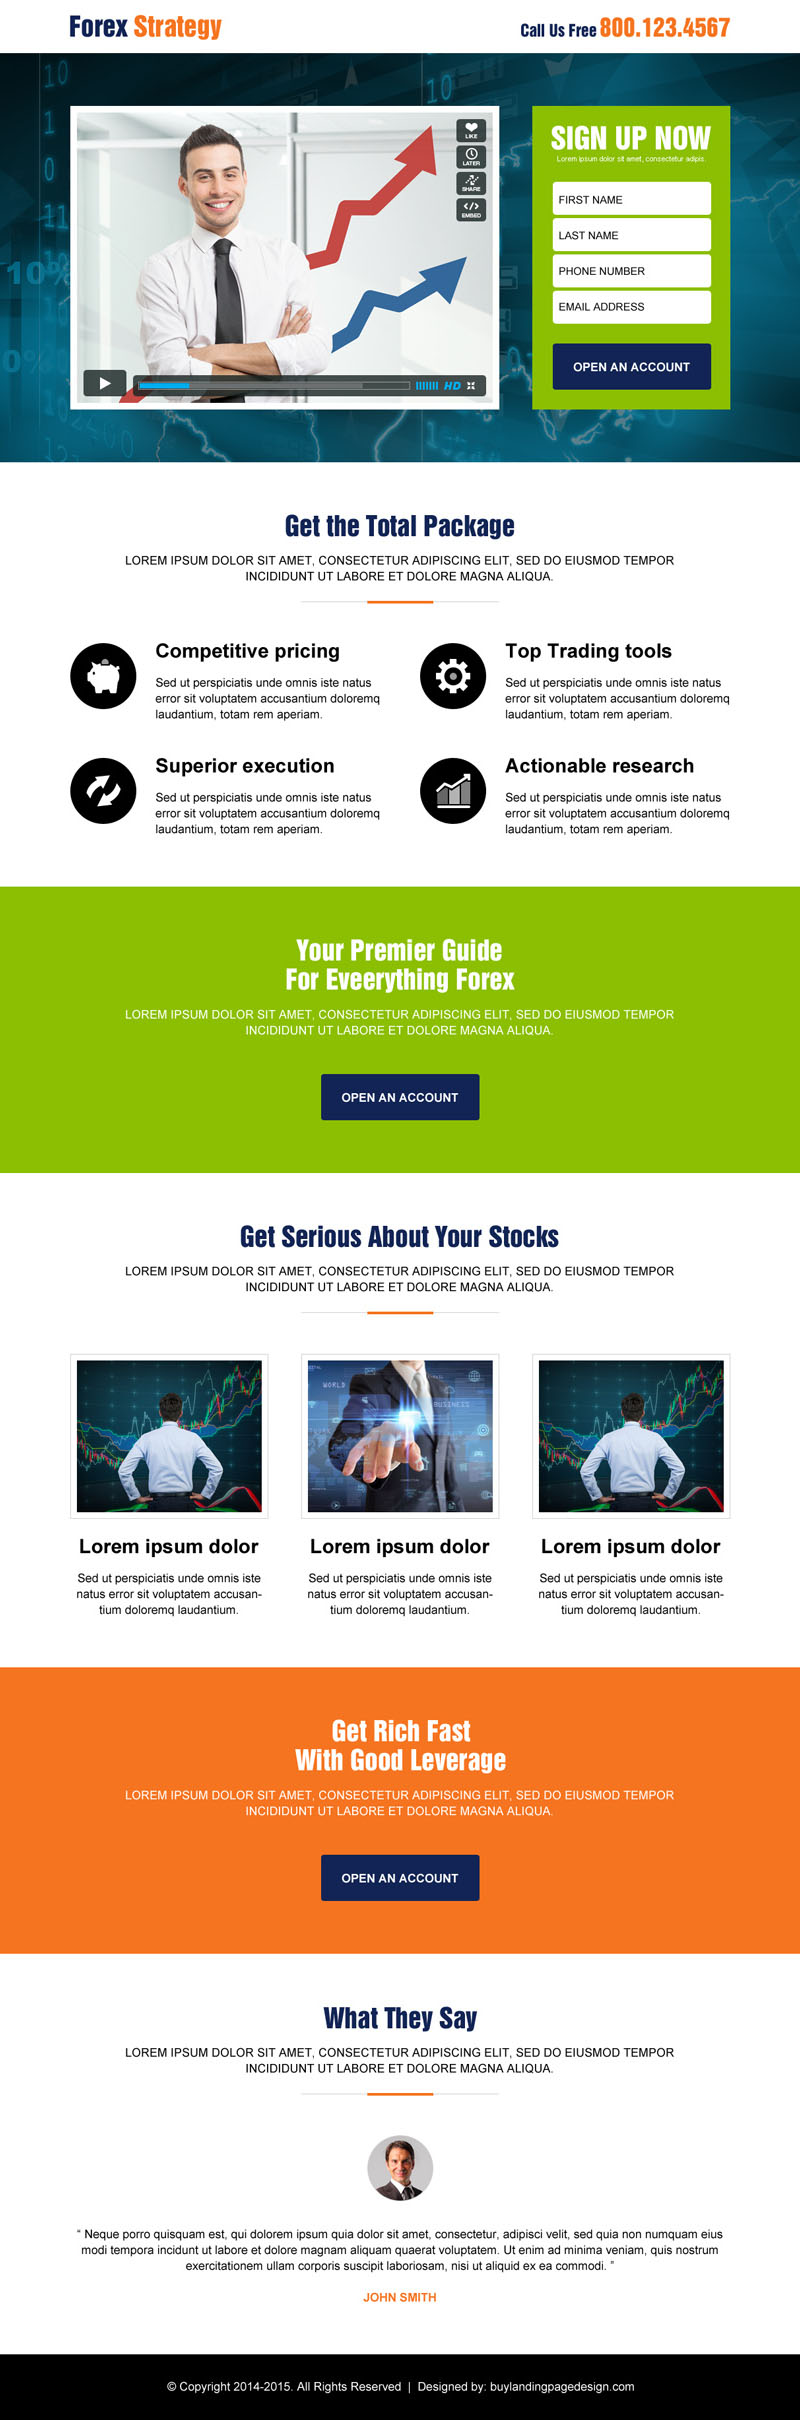 best forex video sign up lead capture responsive landing page design https://www.buylandingpagedesign.com/buy/best-forex-video-sign-up-lead-capture-responsive-landing-page-design/1433